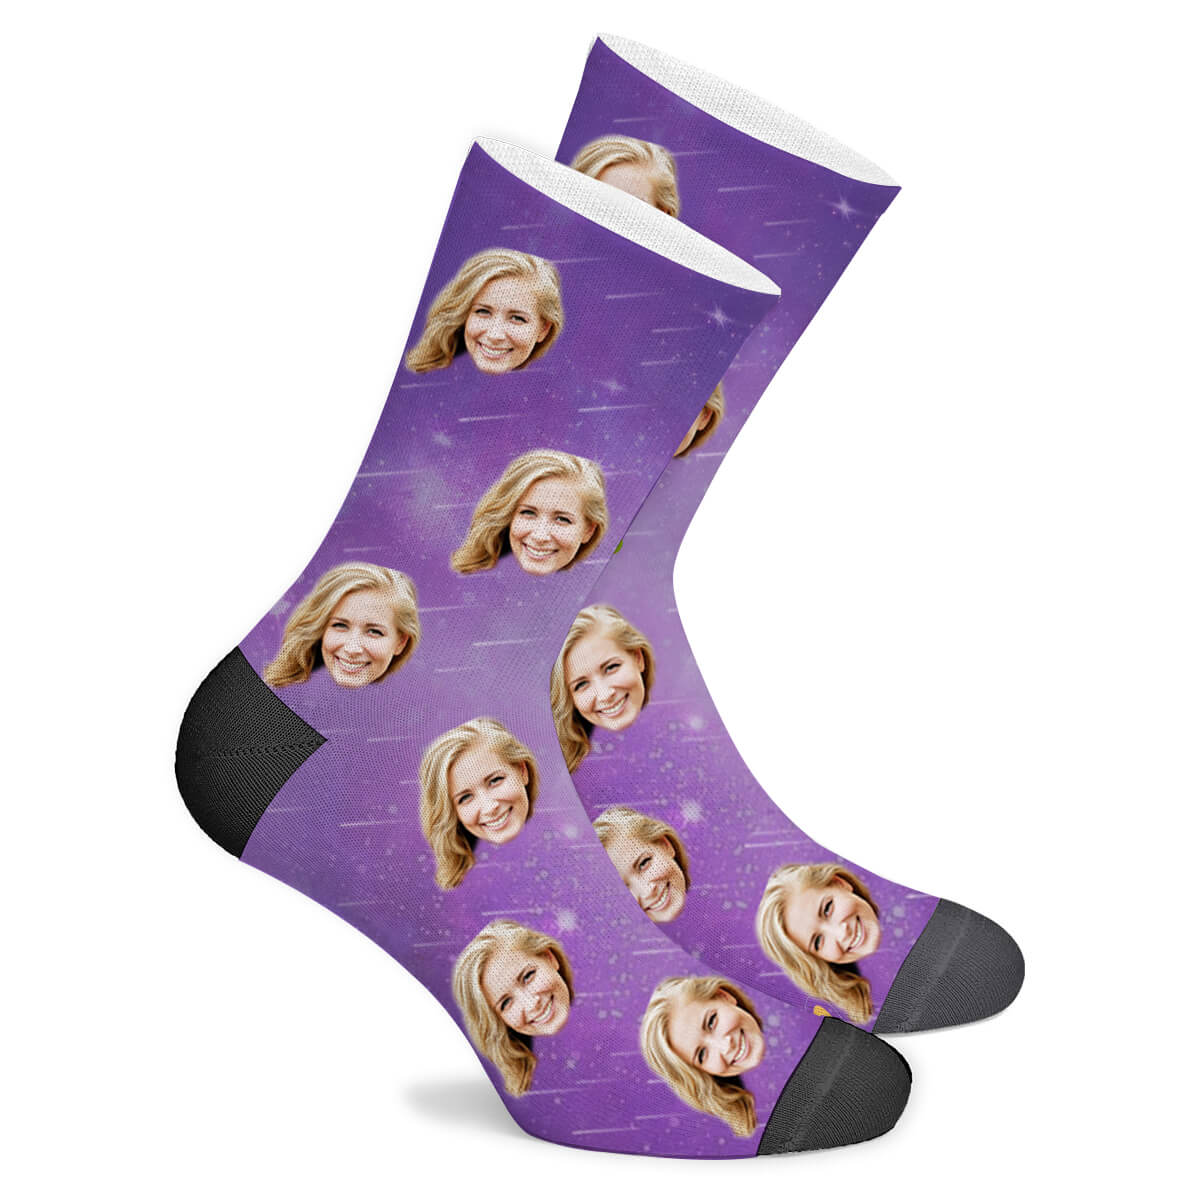 Custom GalaxySocks - Make Face Socks